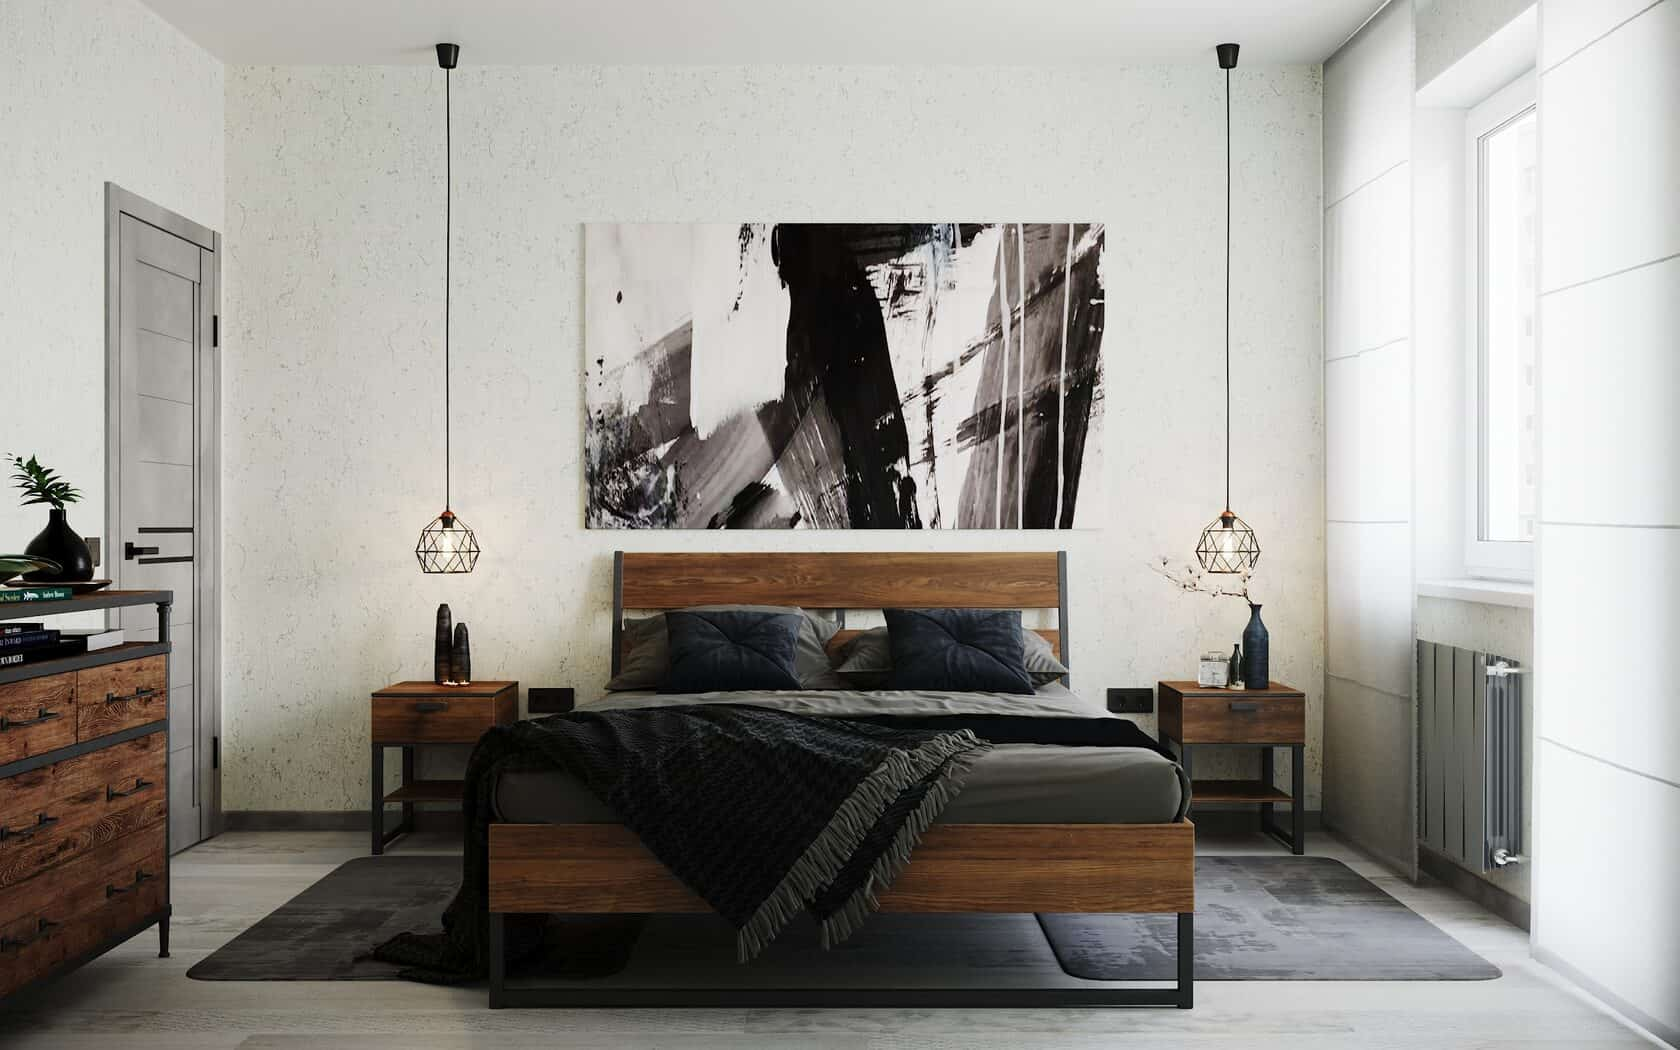 10 Fascinating Bedroom Designs. Urban loft design with wooden bed, nightstand and light colored walls